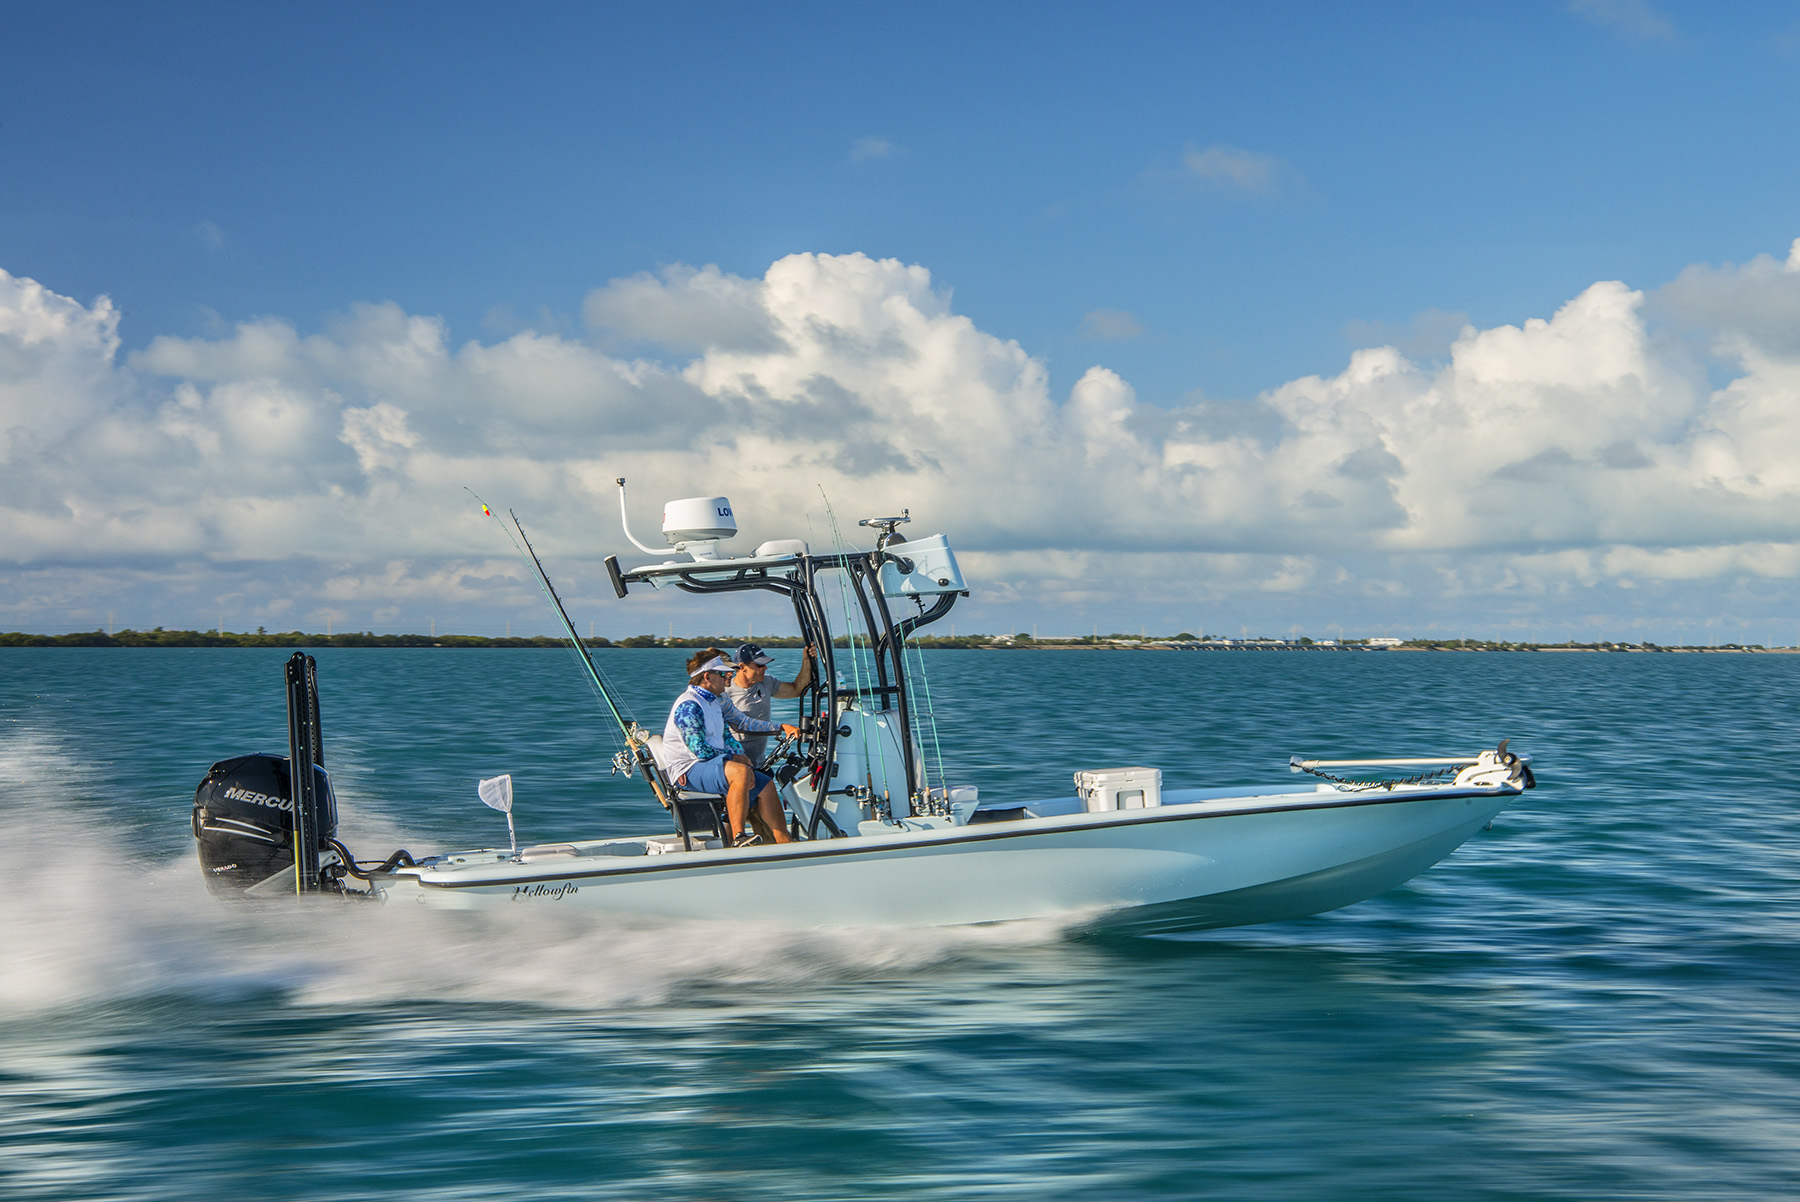 saltwater-experience-headed-out-to-catch-permit-aat-hawks-cay-in-the-florida-keys